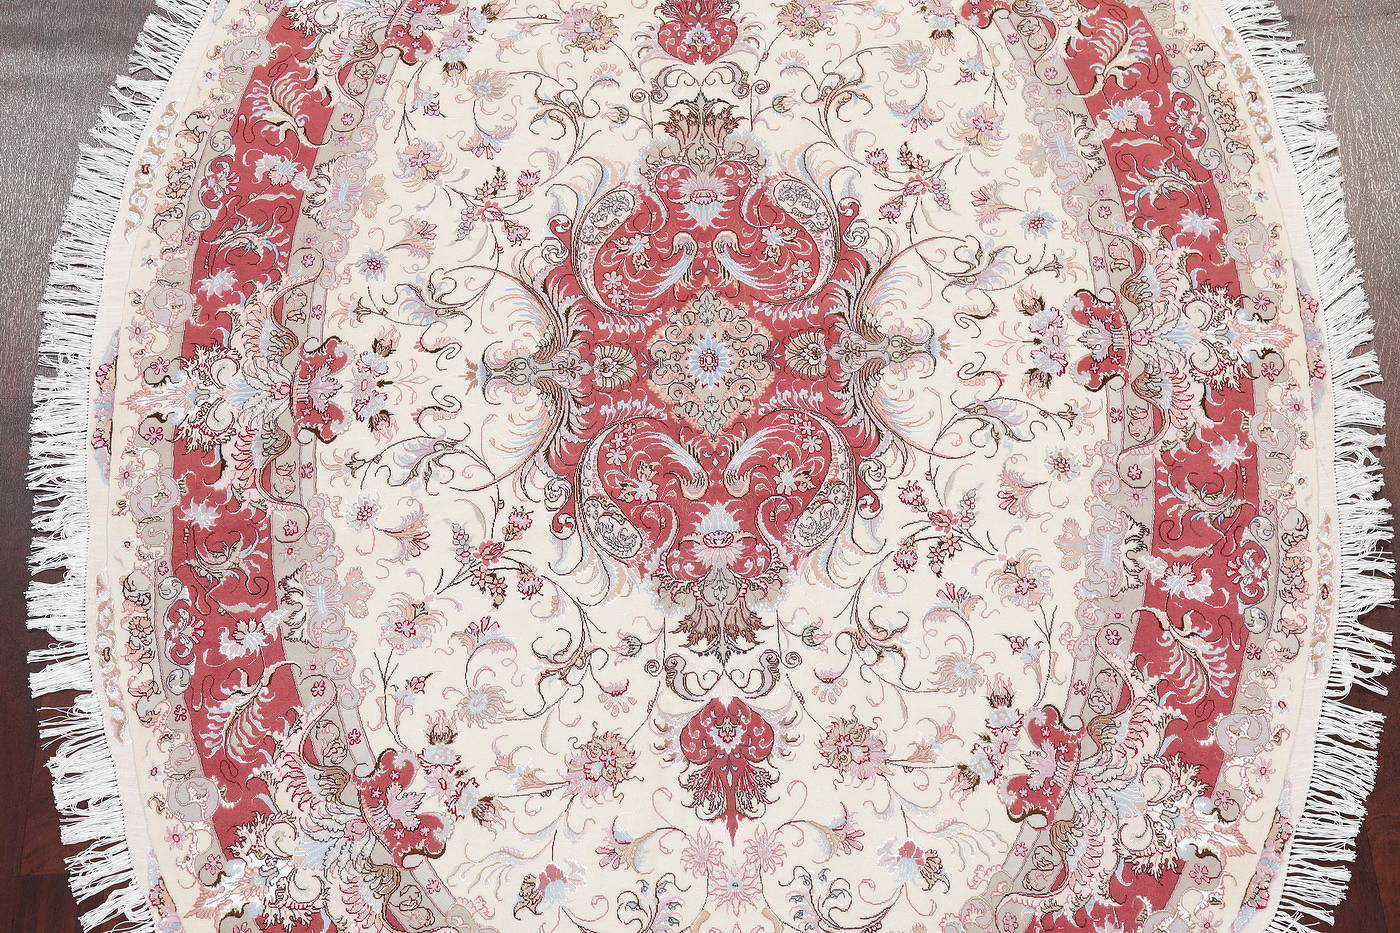 Ivory Floral Tabriz Persian Oval Area Rug 7x10 image 3